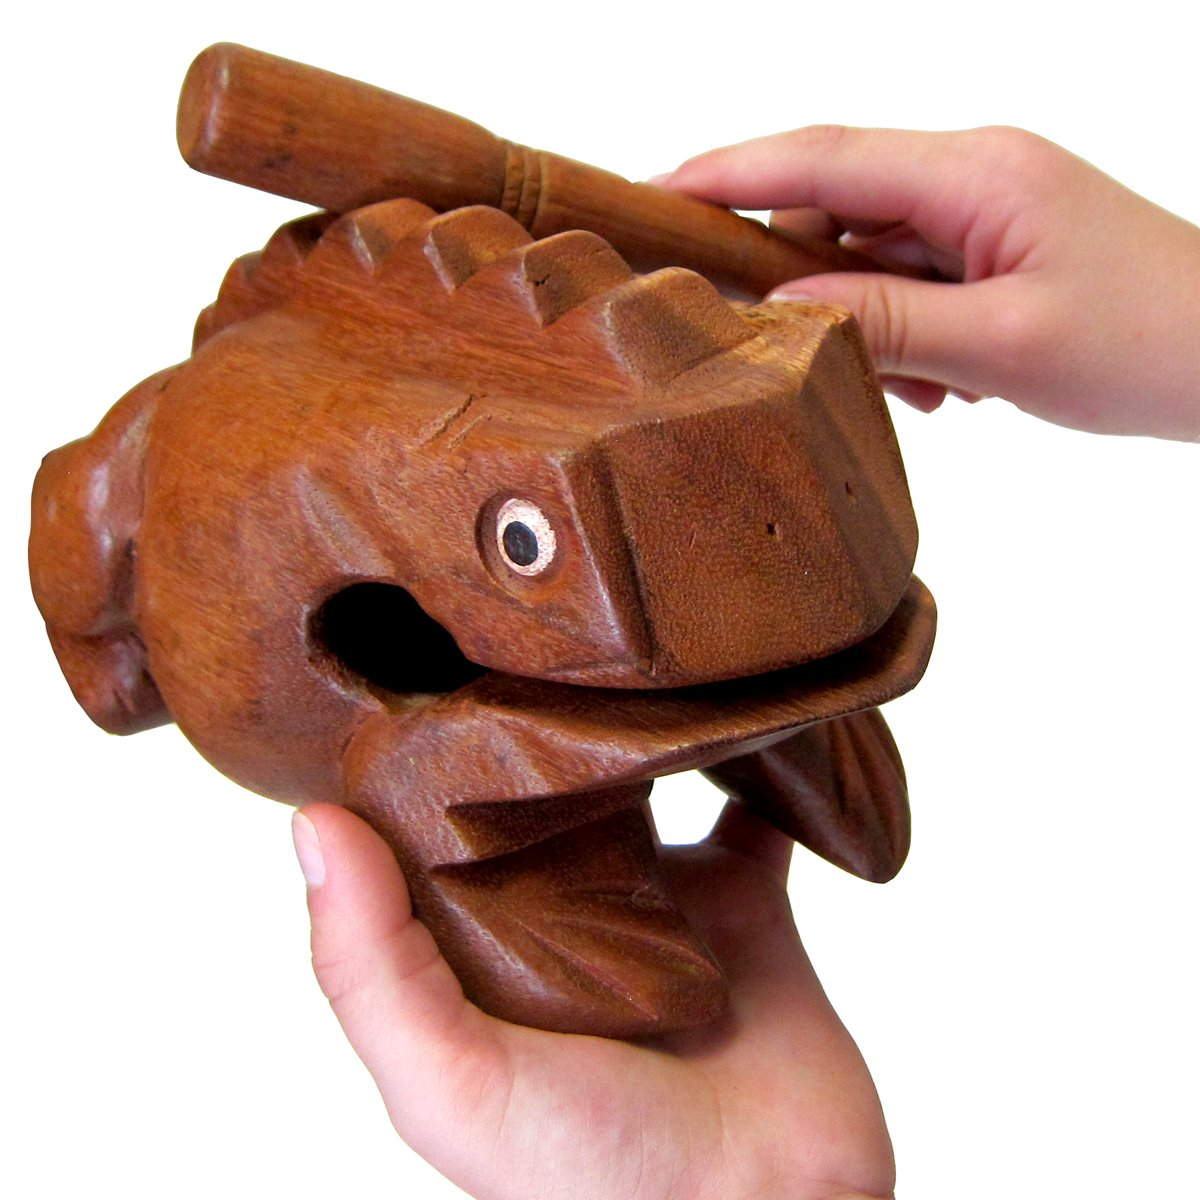 World Percussion USA Deluxe JUMBO 8'' Wood Frog Guiro Rasp - Musical Instrument Tone Block, Brown, inch (FR08N) by World Percussion USA